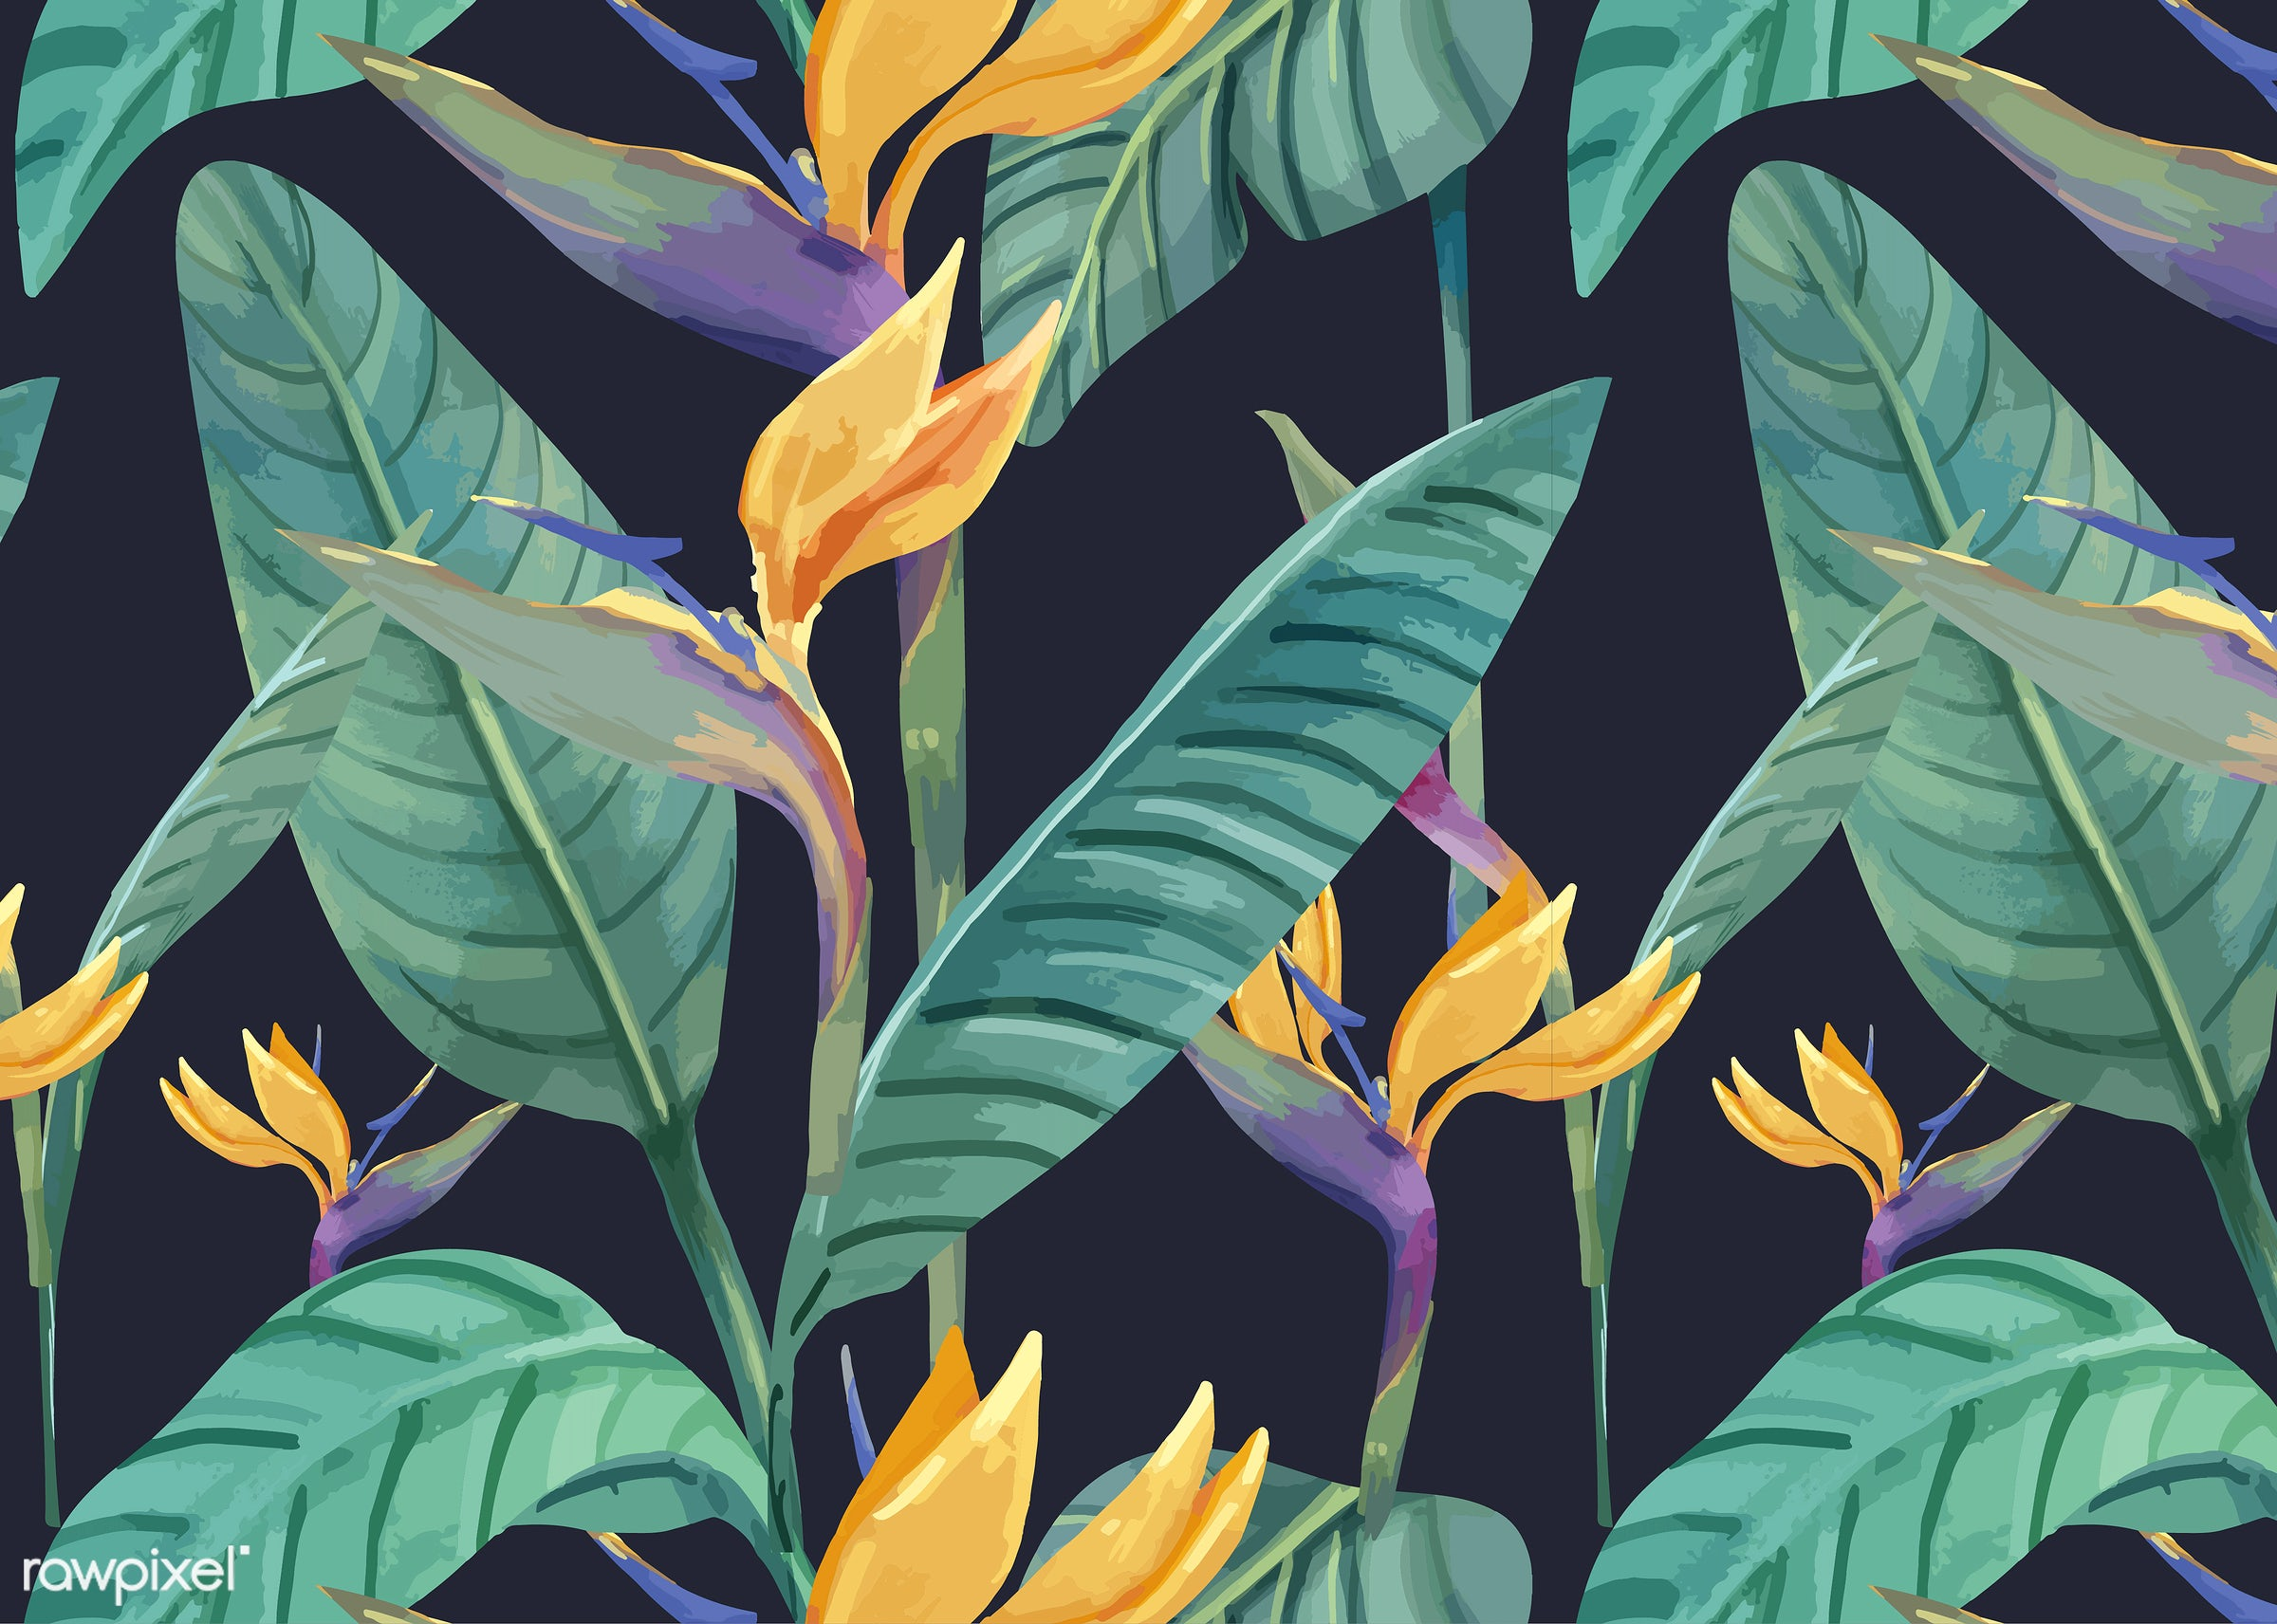 Hand drawn bird of paradise pattern - artwork, background, beautiful, bird of paradise, bloom, blooming, blossom, botanic,...